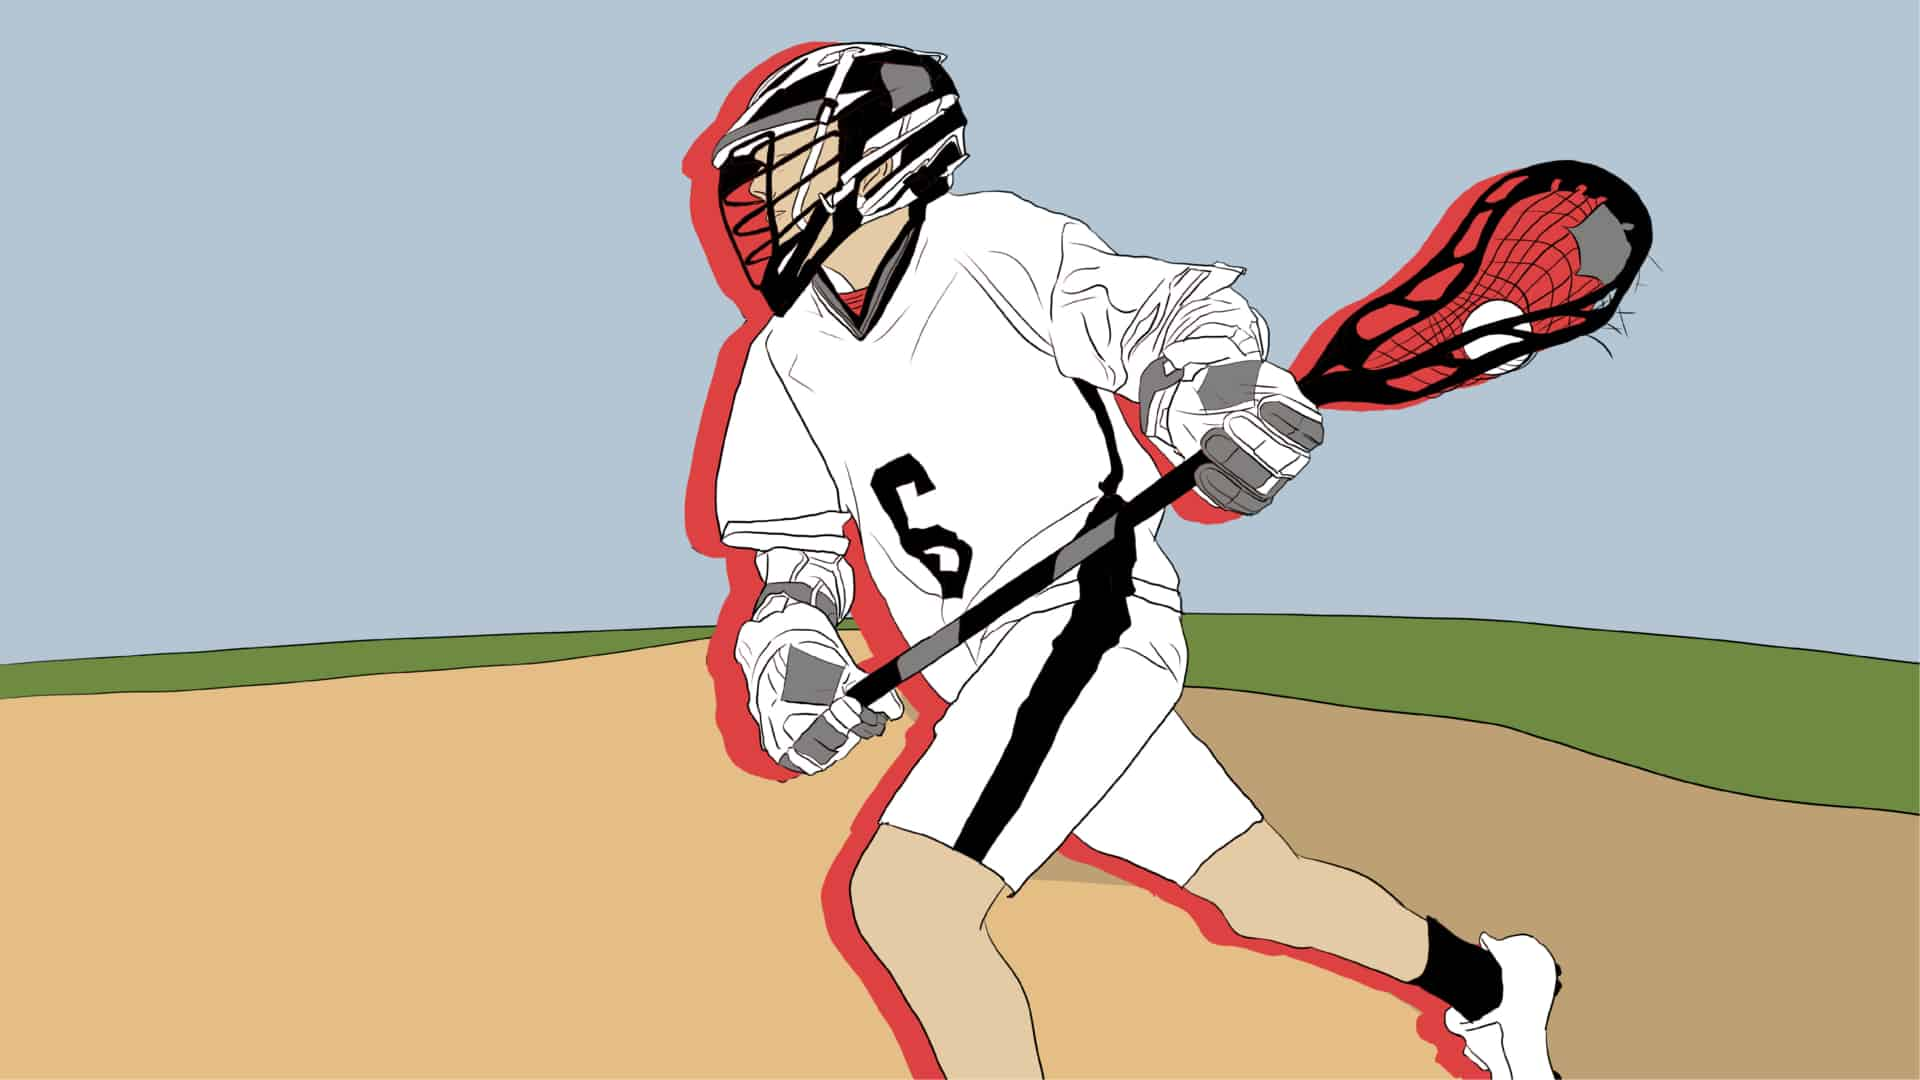 The complicated story of lacrosse